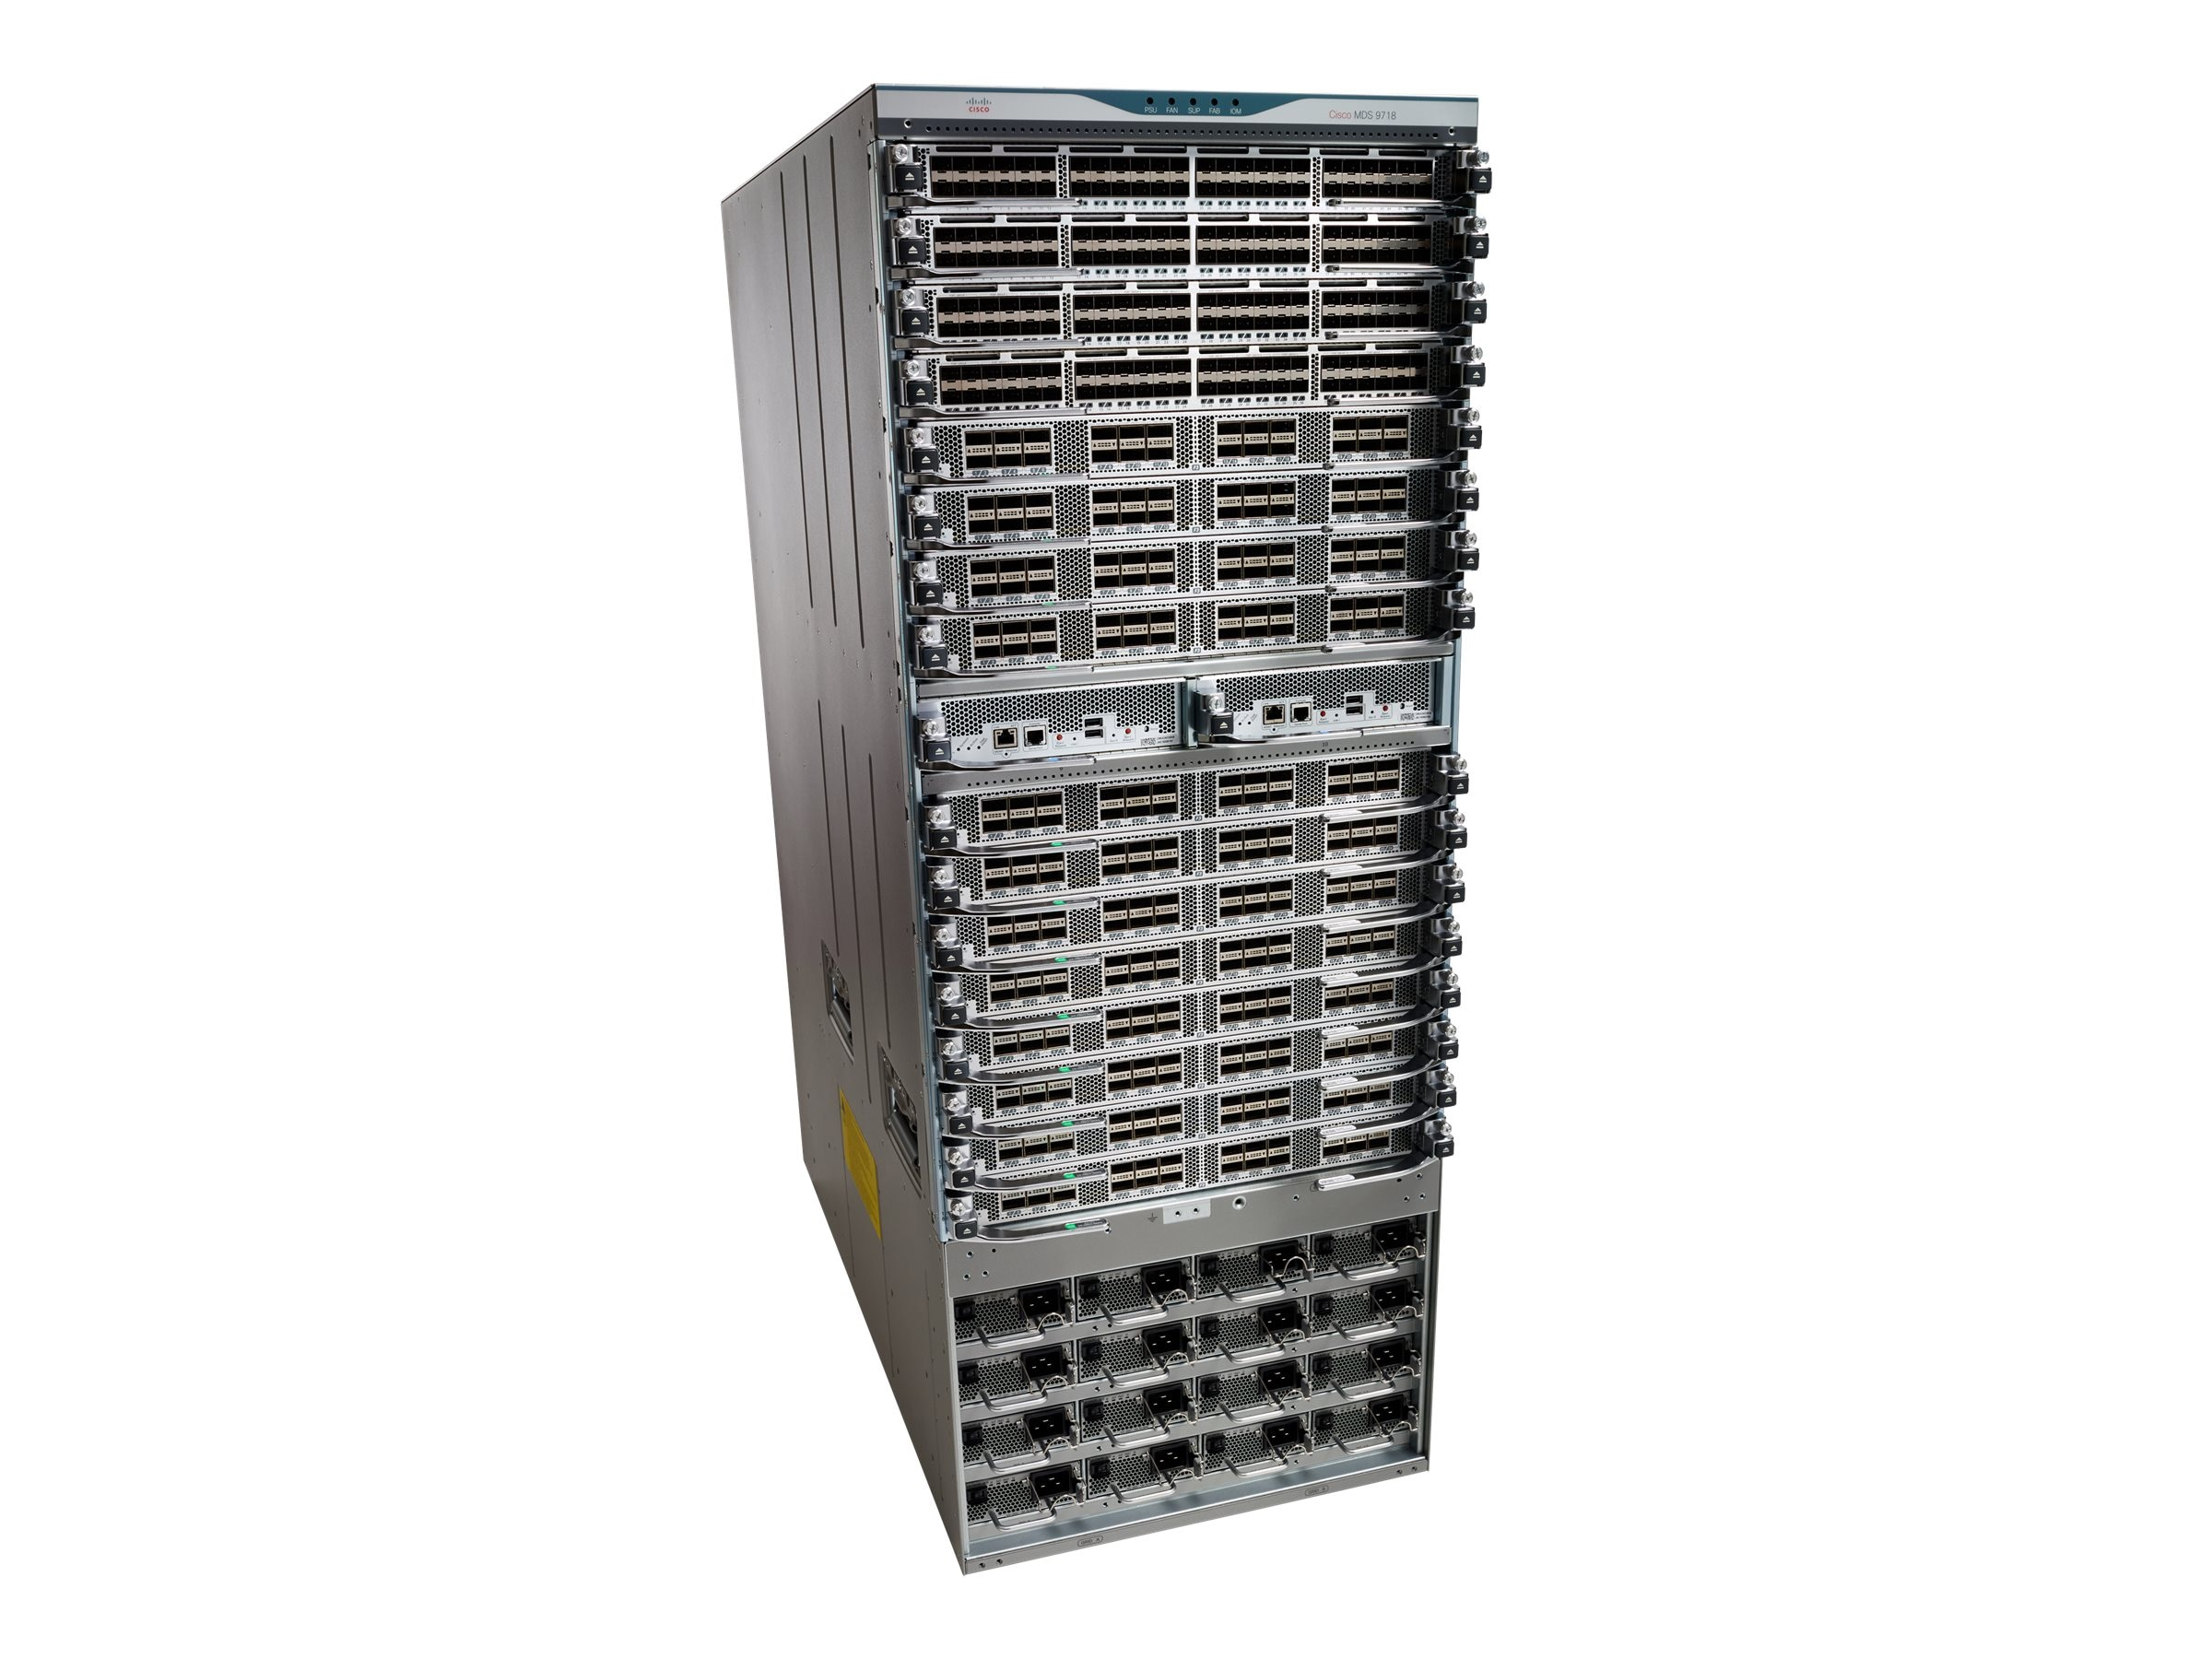 Cisco MDS 9718 Chassis, Fans Inc., DS-C9718